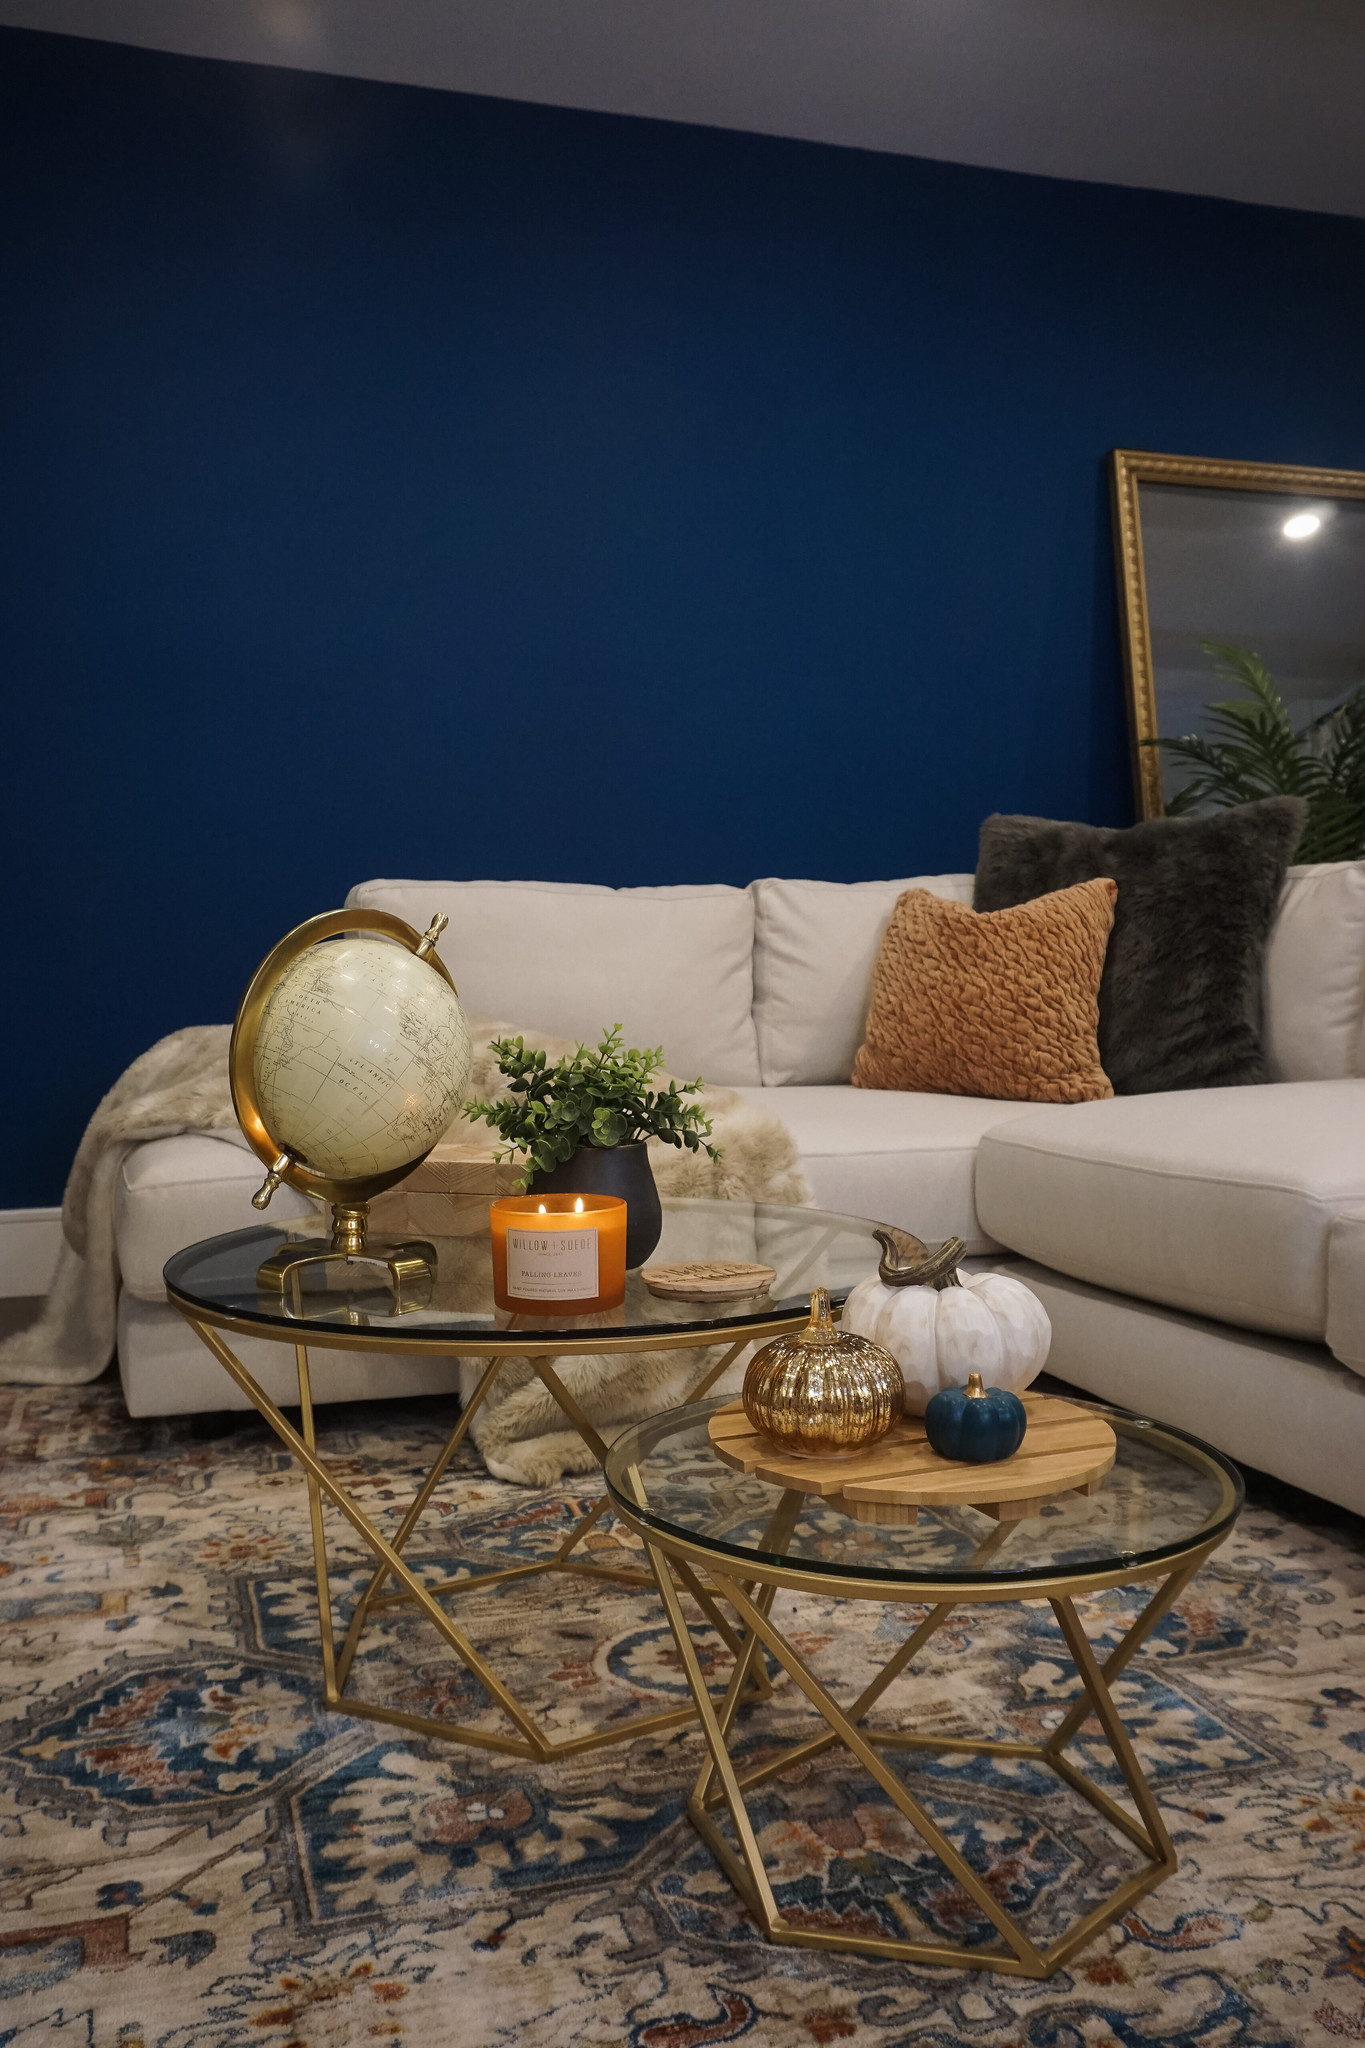 Living Room Fall Decor | Blue Walls | White Sectional Couch | Pumpkin Table Decor | Fall Candle on Coffee Table